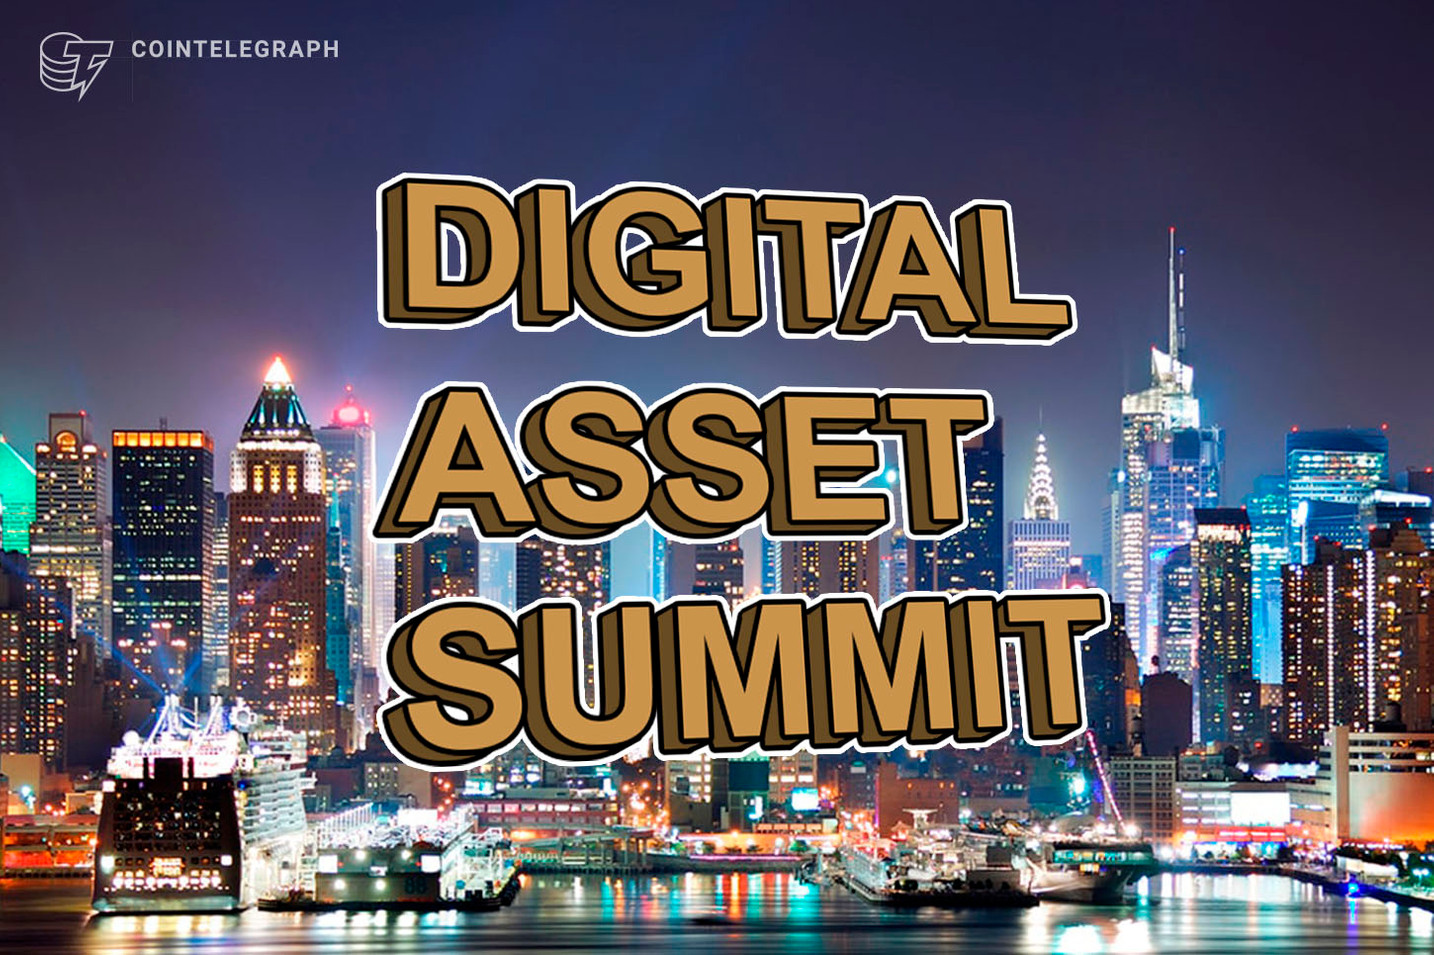 Major Financial Institutions, Asset Managers and Blockchain Industry Leaders to Convene in New York at the Digital Asset Summit, May 15, 2019